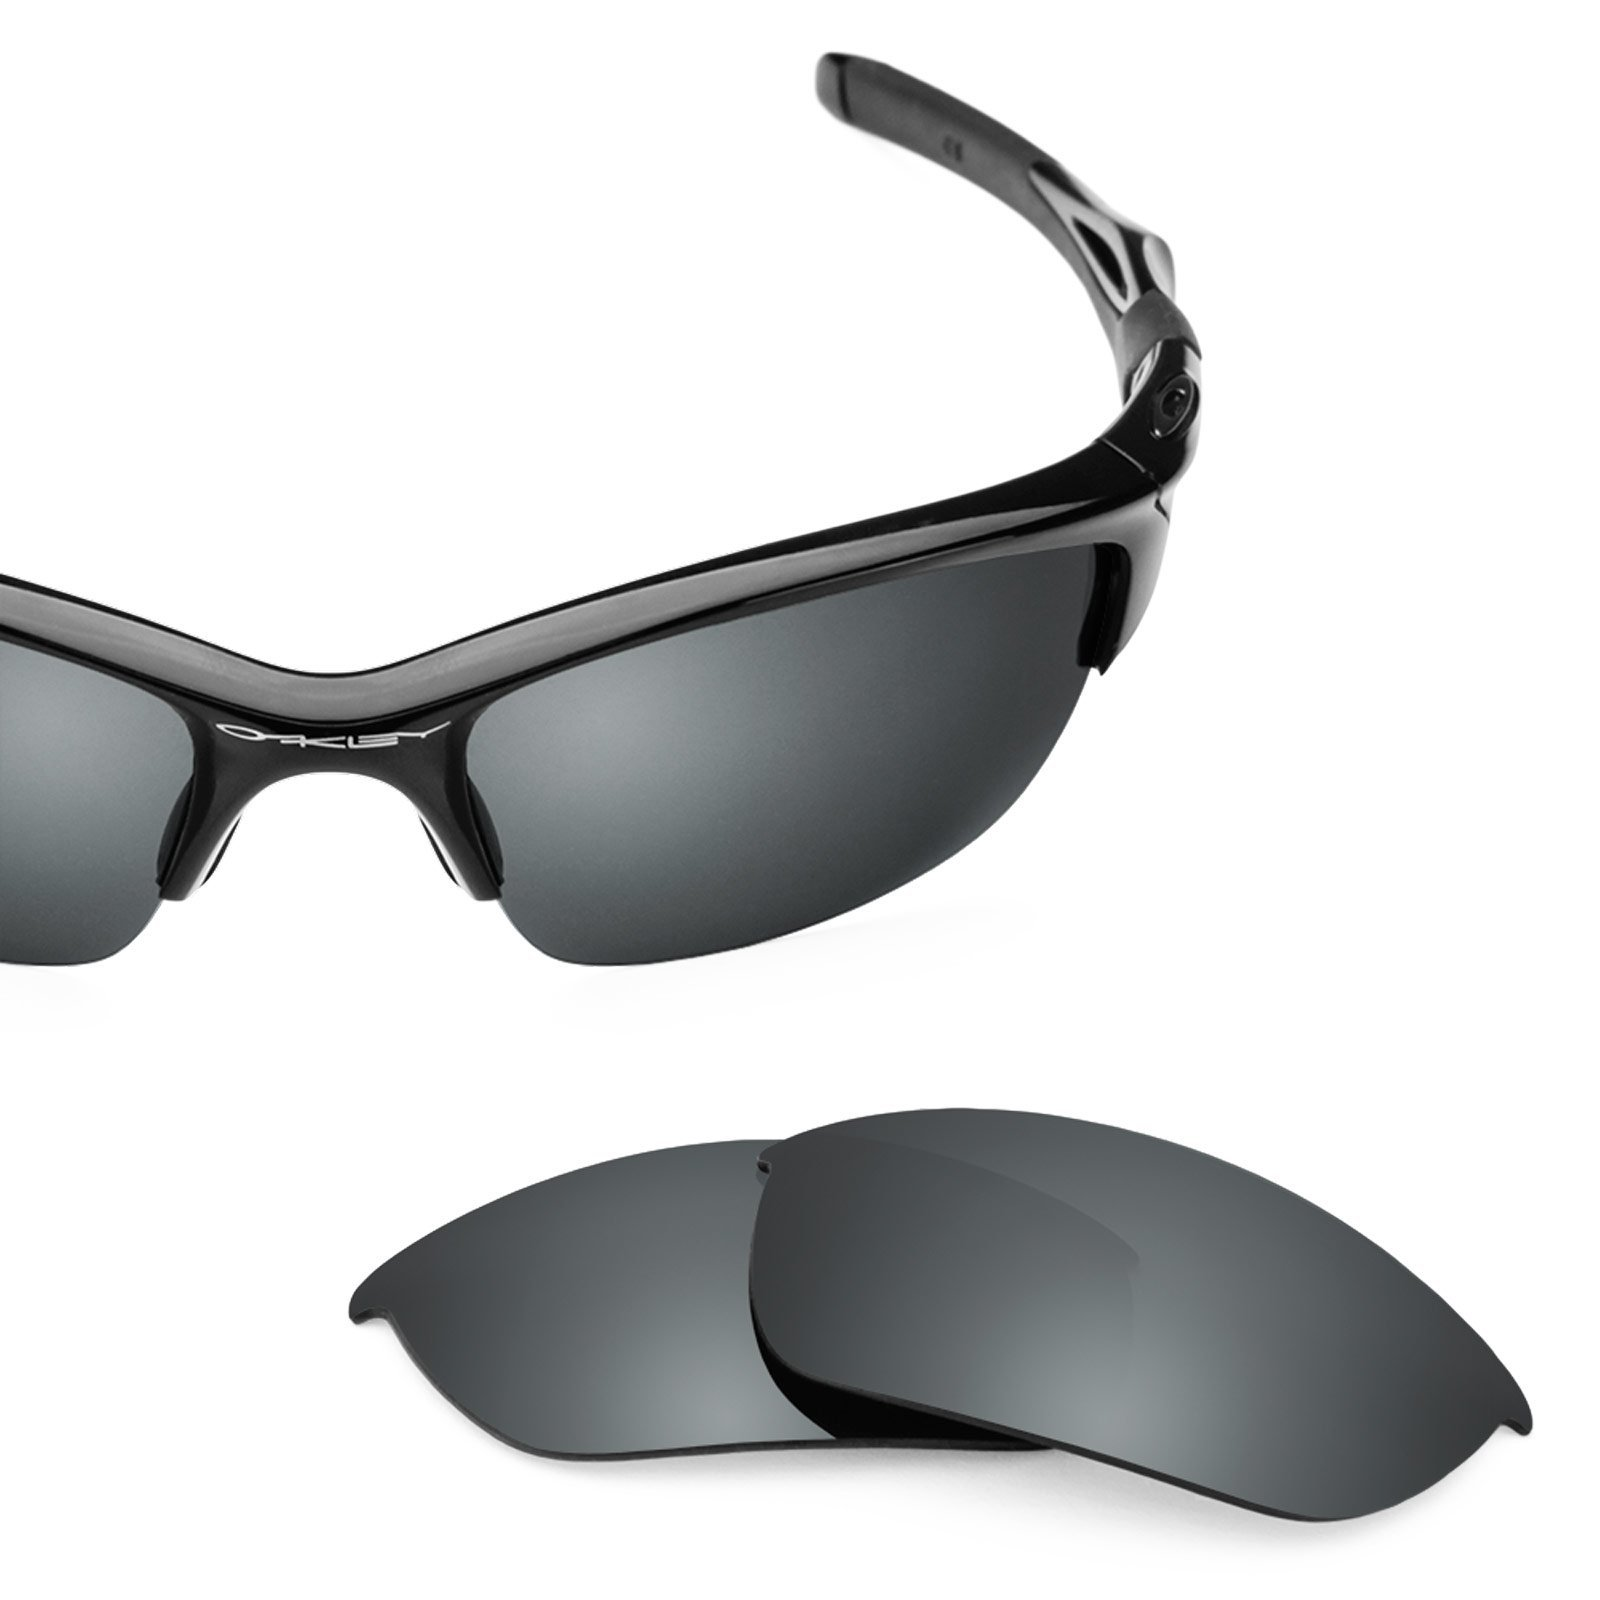 Revant Polarized Replacement Lenses for Oakley Half Jacket 2.0Black Chrome MirrorShield by Revant